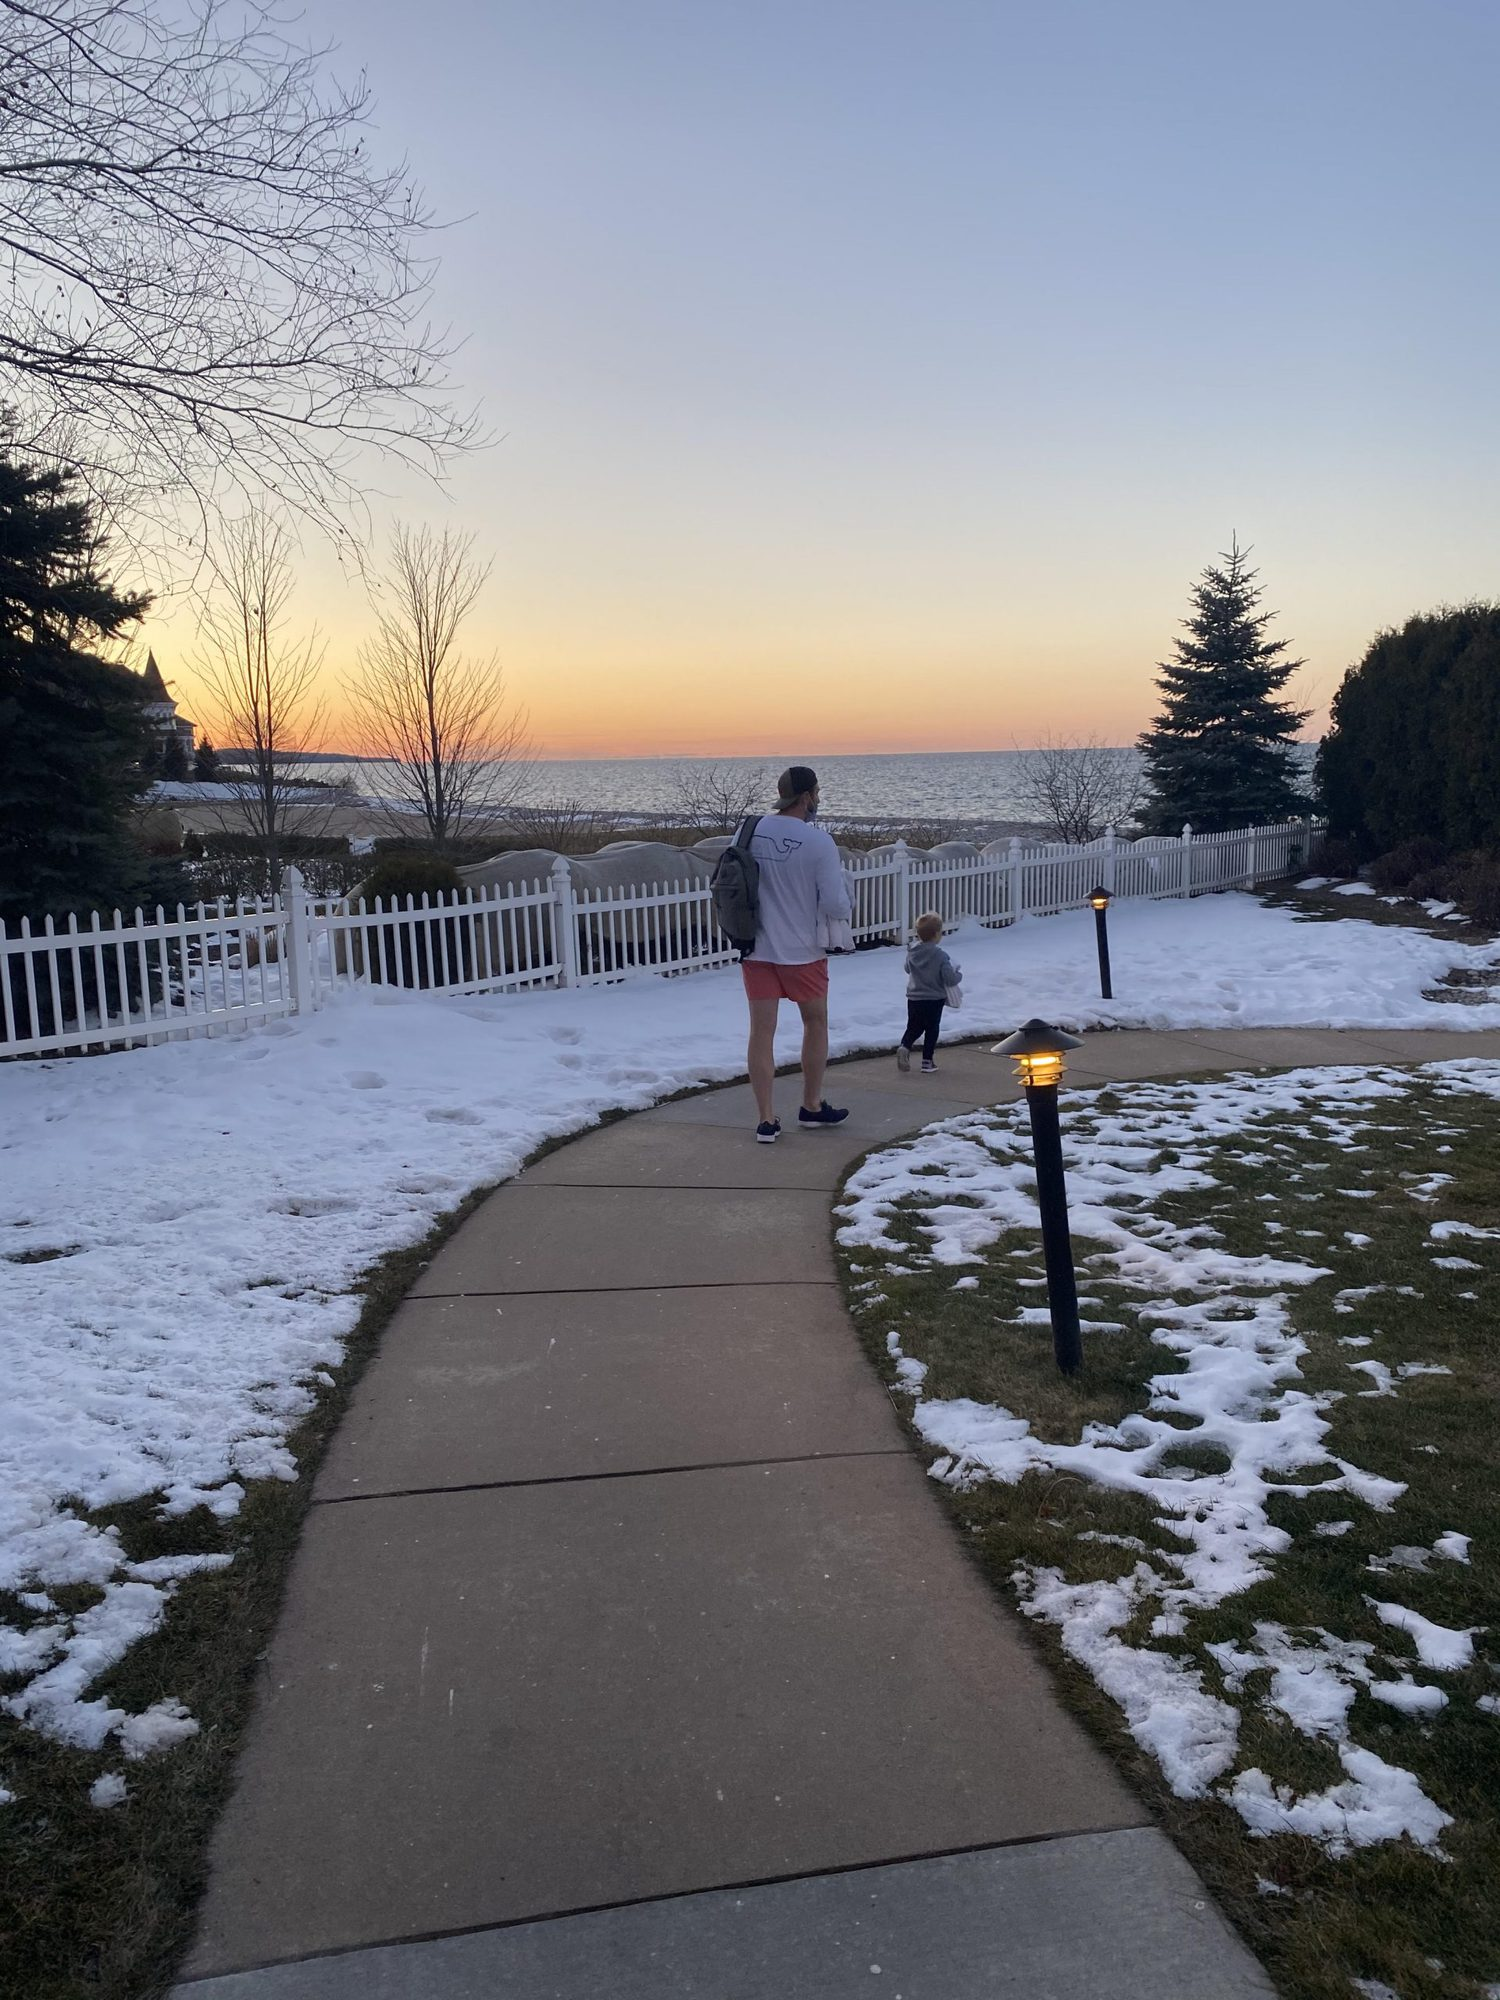 father and son walking outside during winter sunset |Inn at Bay Harbor by popular Michigan travel blog, The House of Navy: image of a dad and his son walking outside on a sidewalk at the Inn at Bay Harbor.